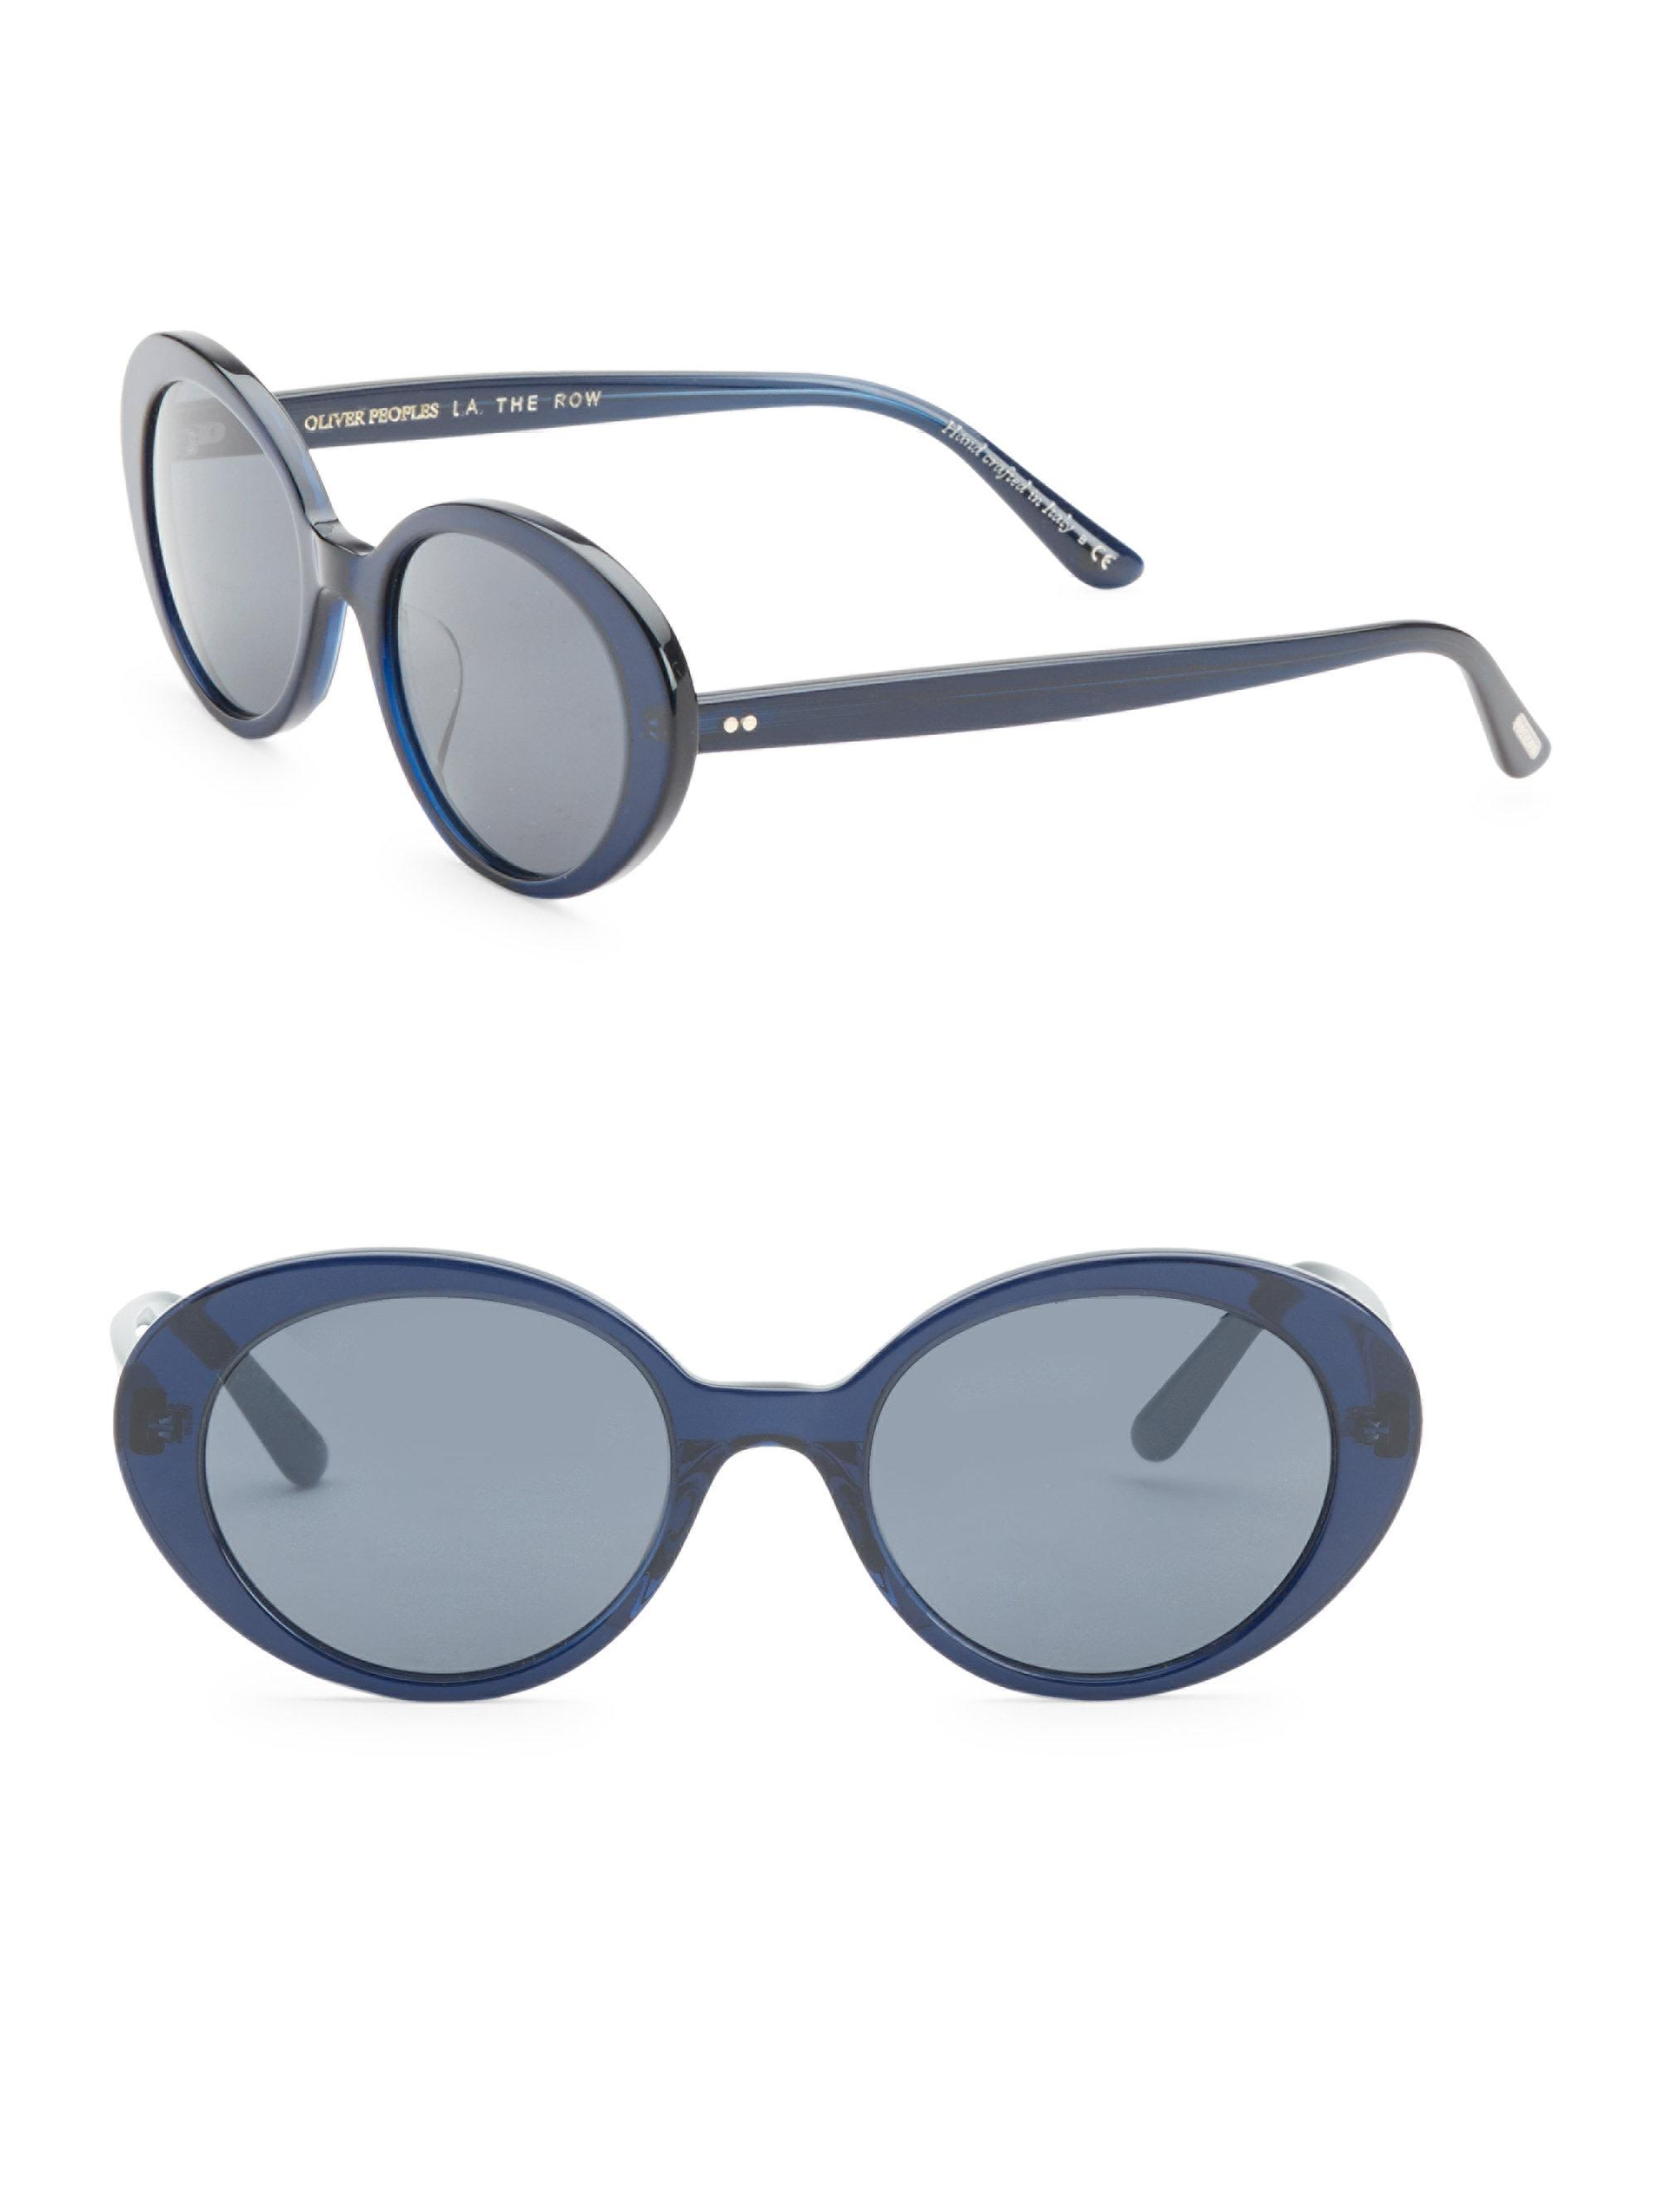 5955260ad50 Oliver Peoples Parquet 50mm Sunglasses in Blue - Lyst